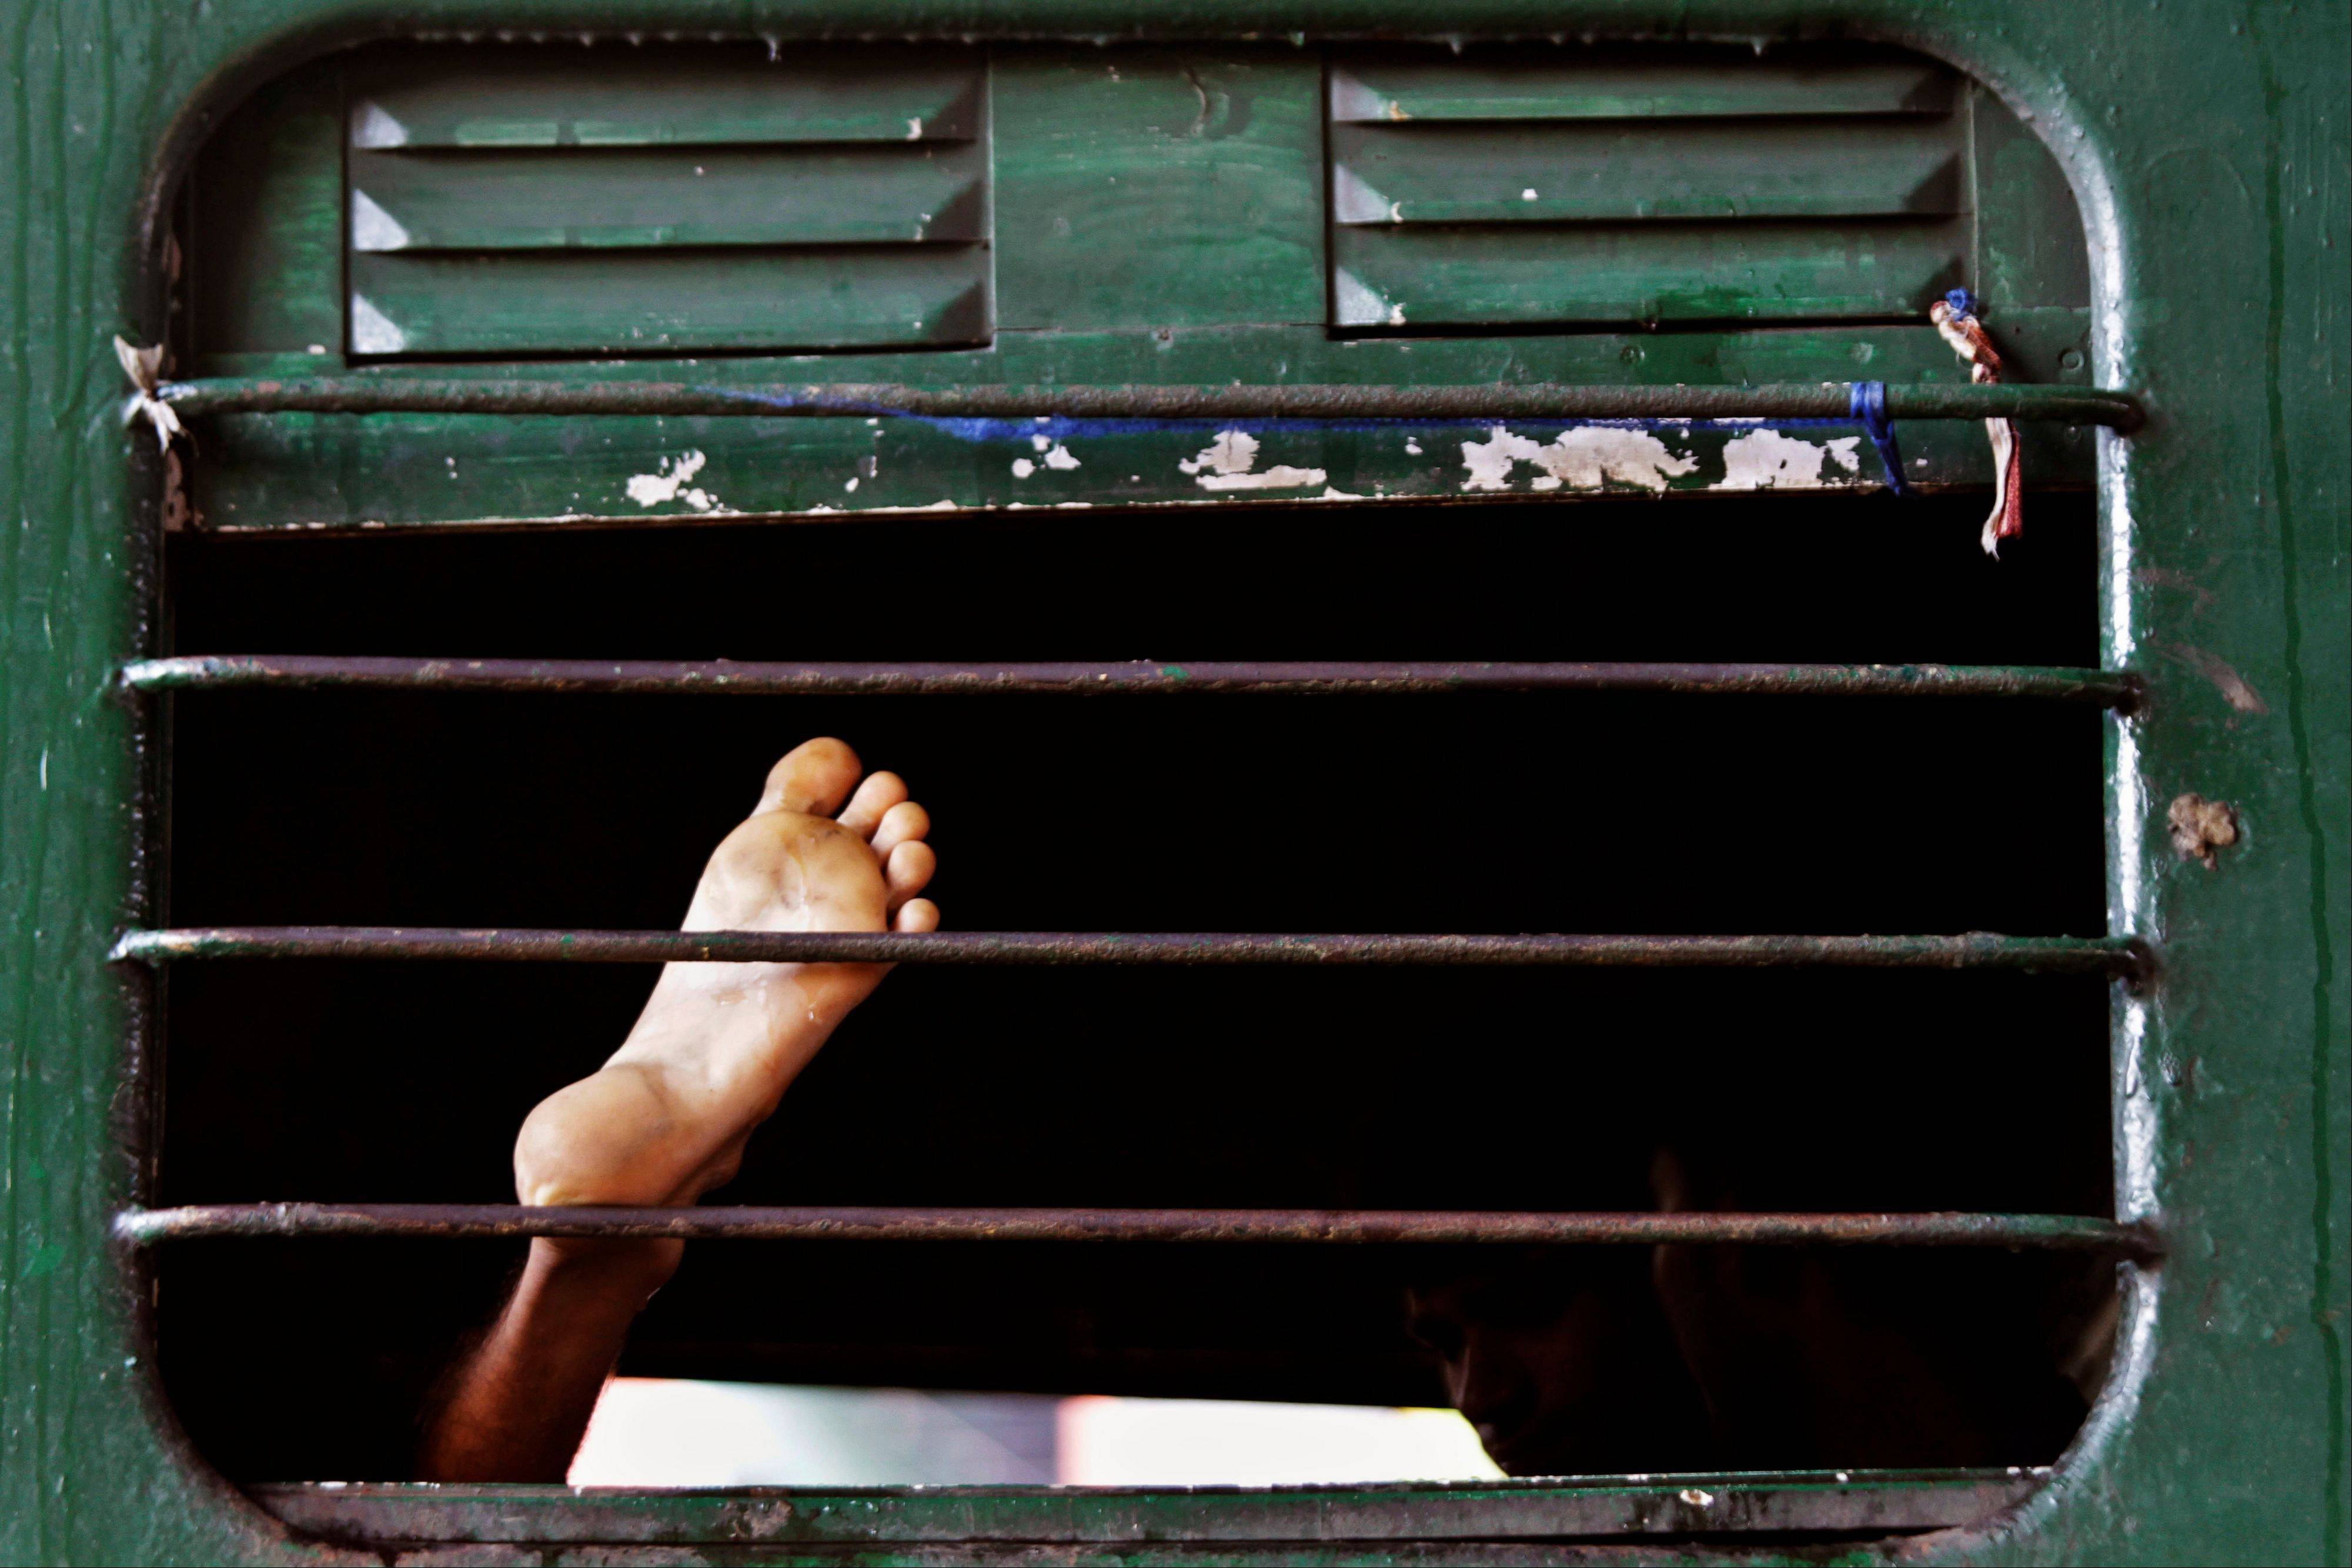 A stranded Indian train passenger rests inside a railway coach as he waits for the train service to resume following a power outage in Kolkata, India, Tuesday, July 31, 2012. India's energy crisis cascaded over half the country Tuesday when three of its regional grids collapsed, leaving 620 million people without government-supplied electricity for several hours in, by far, the world's biggest-ever blackout.